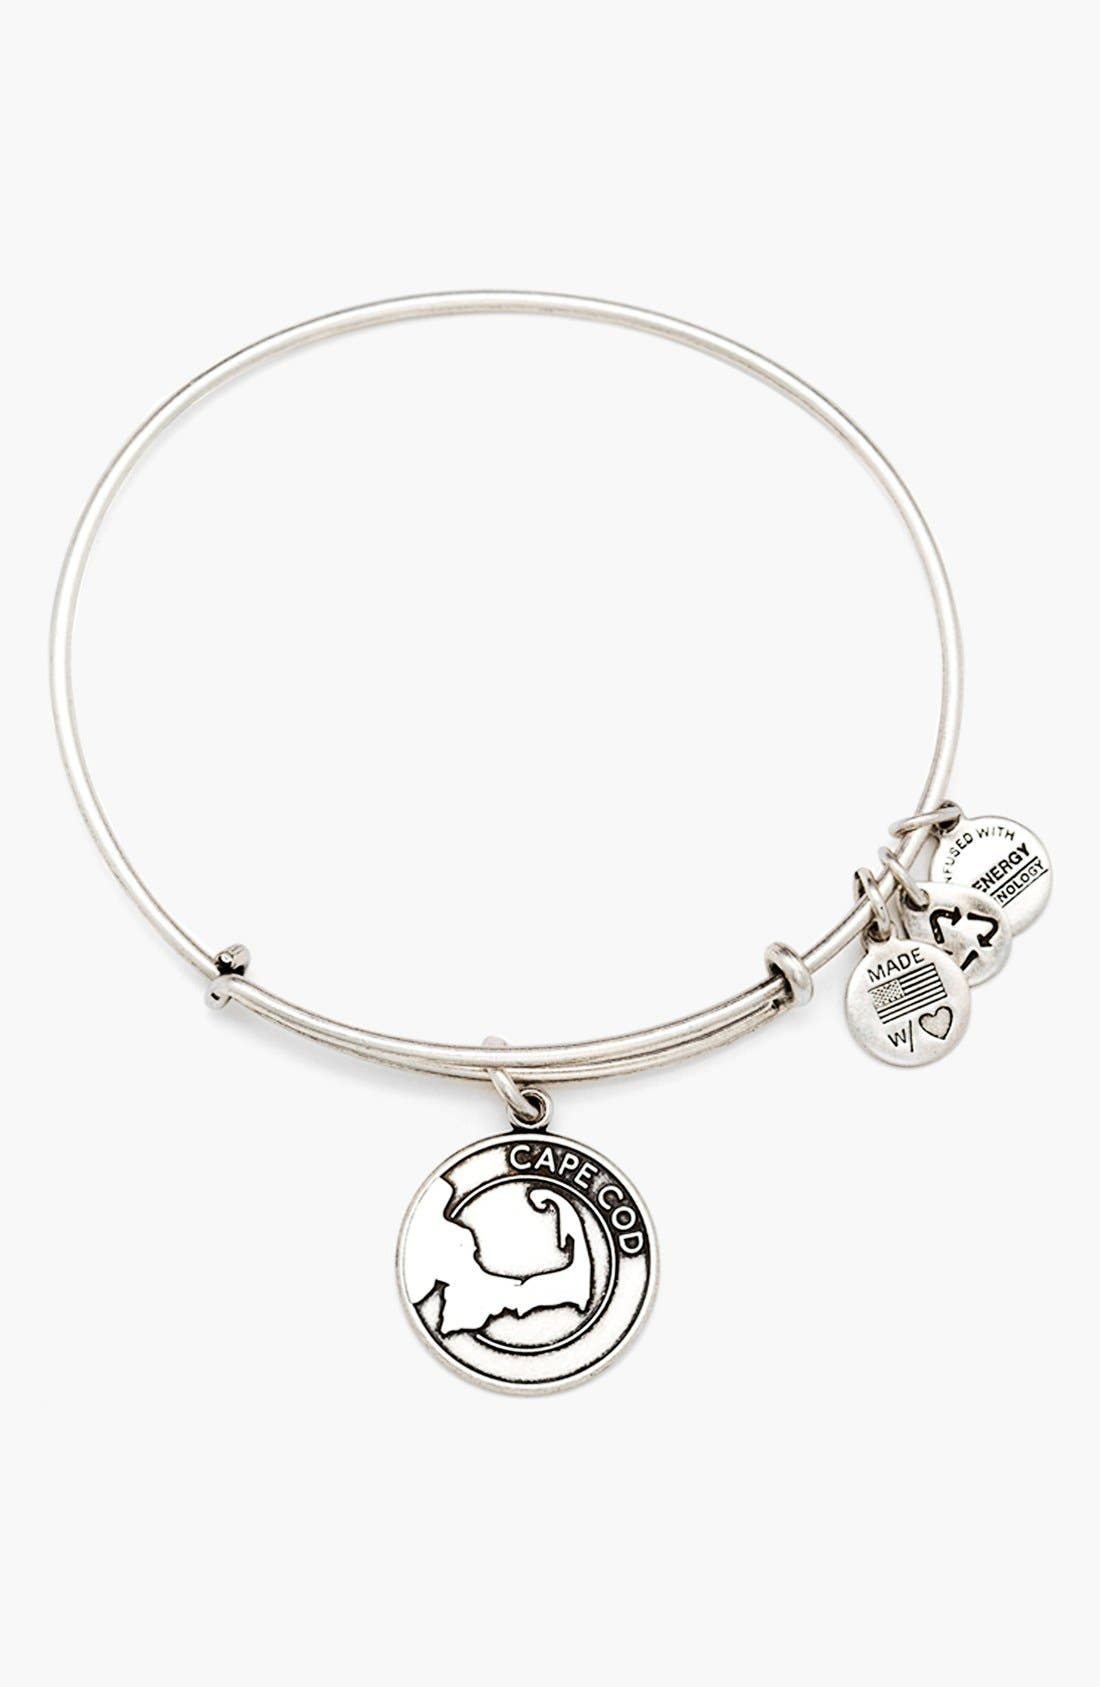 ALEX AND ANI 'Cape Cod' Expandable Wire Bangle, Main, color, 040